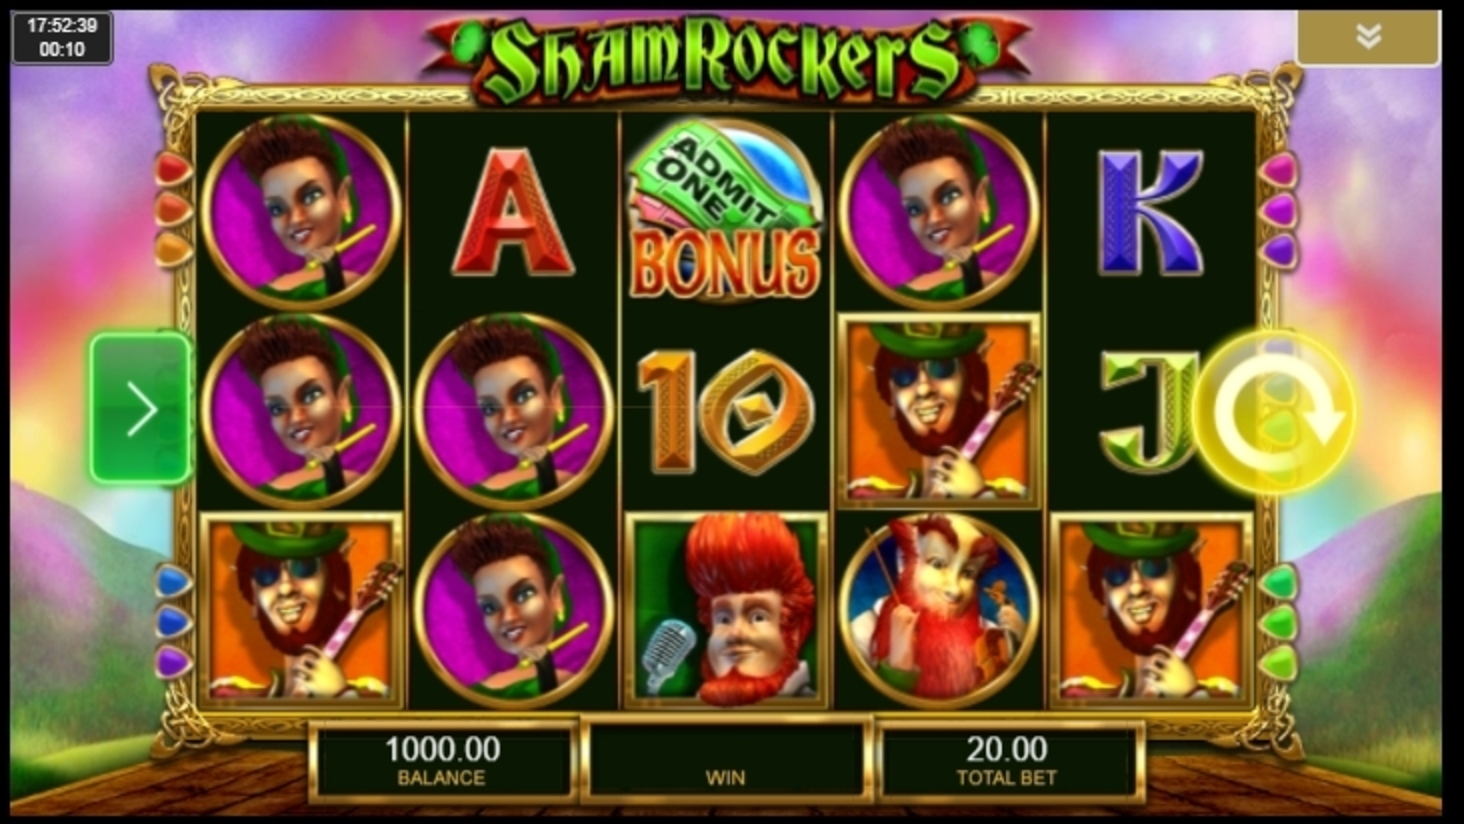 Reels in Shamrockers Eire to Rock Slot Game by IGT